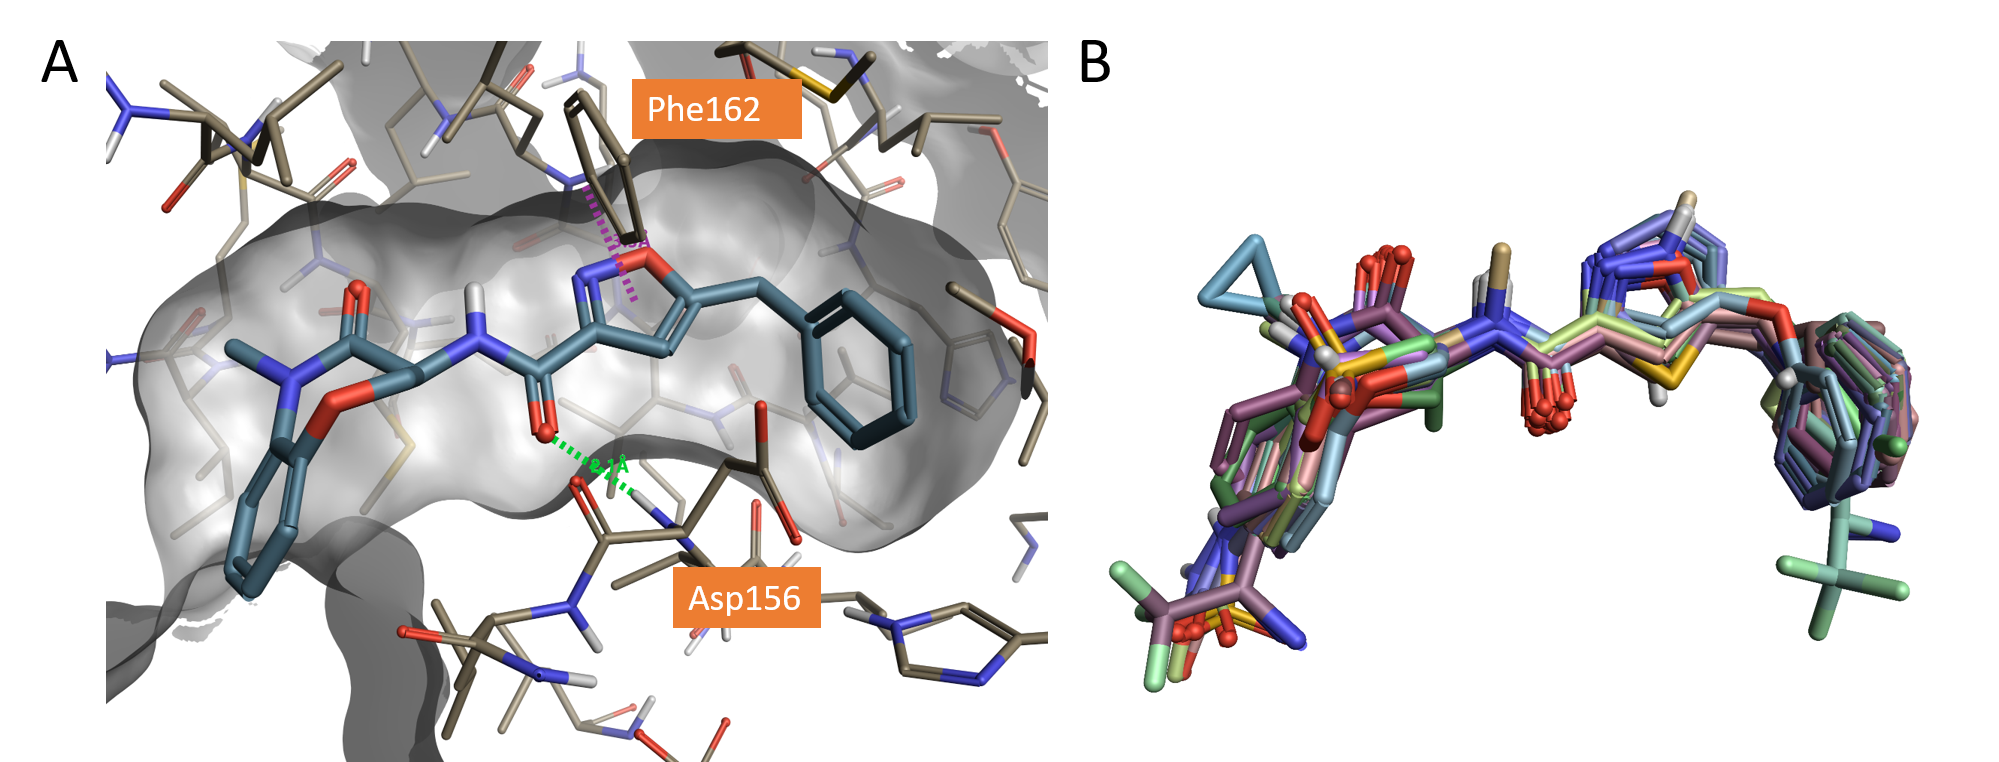 Figure 1_Crystallographic compound GSK'481 and Dataset of molecules aligned to the X-ray structure of GSK'481